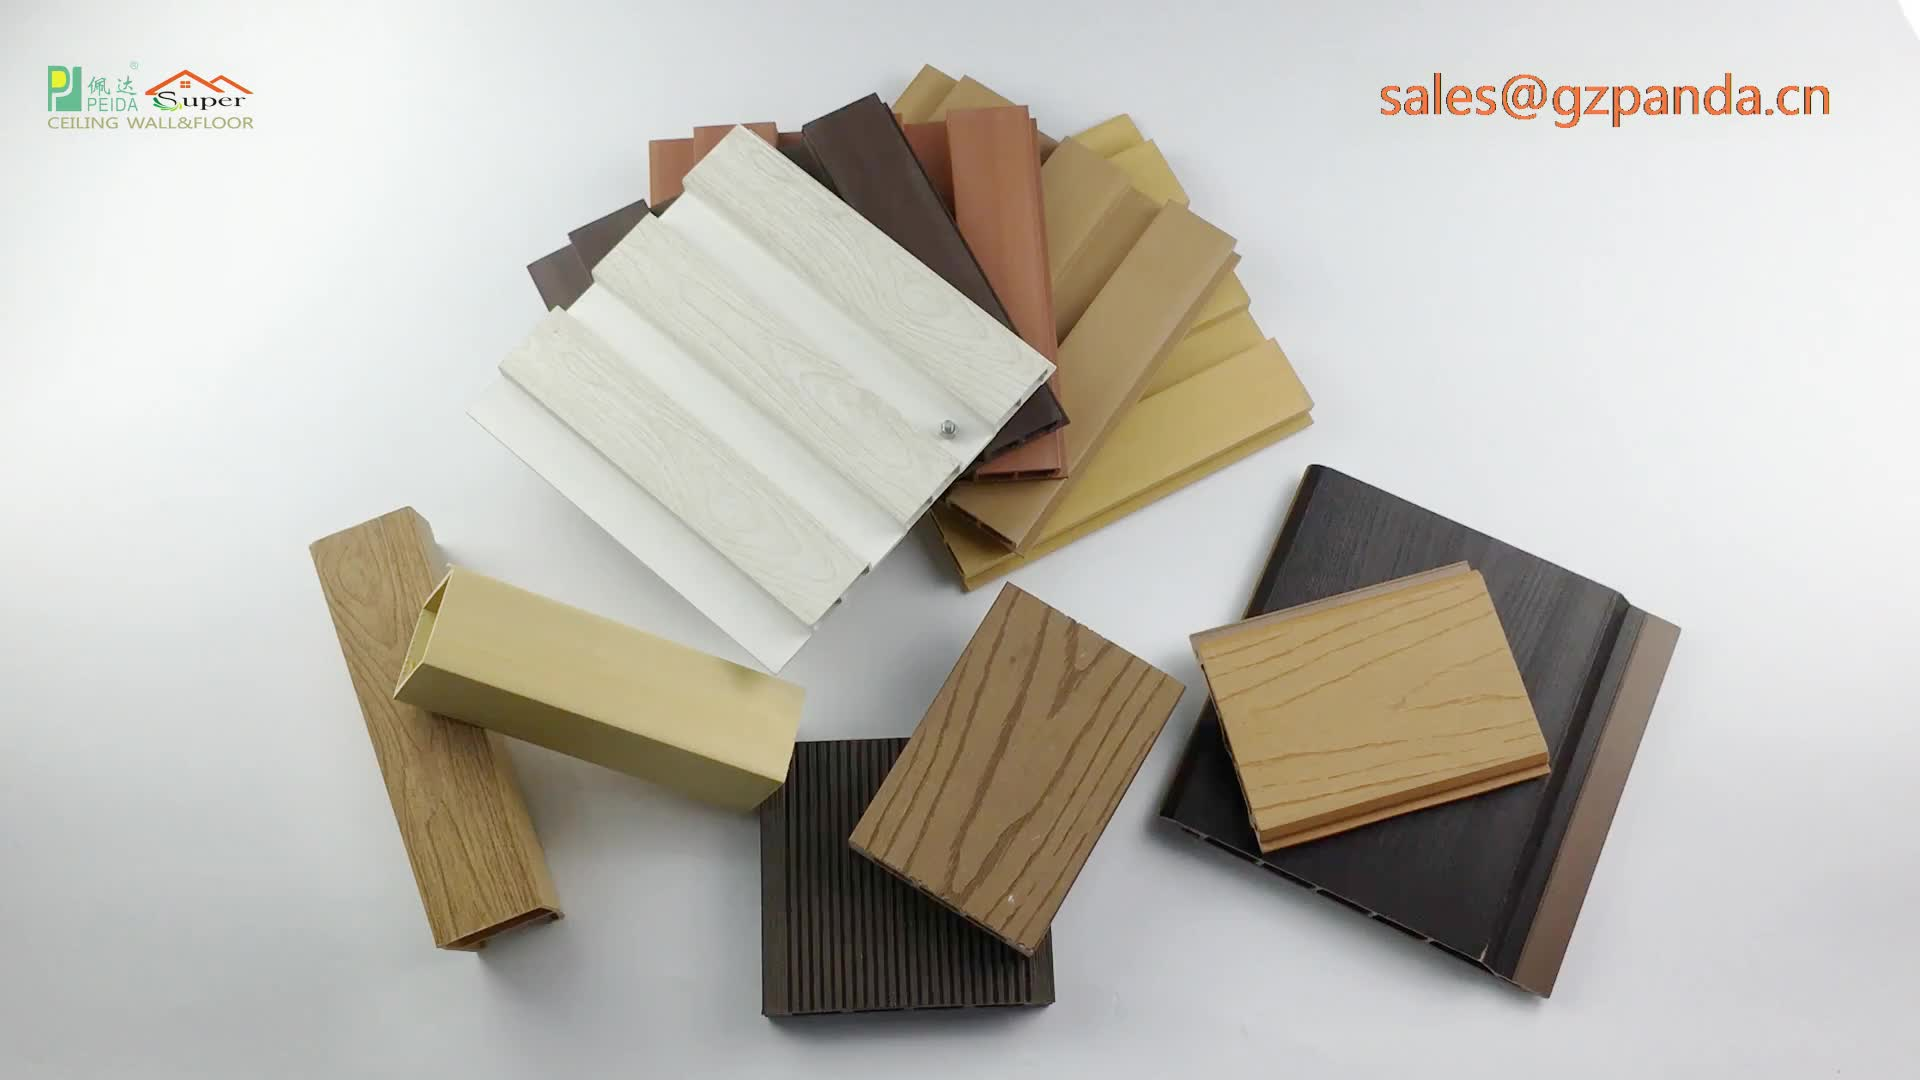 High Quality Hoh Ecotech Black WPC Waterproof Interlocking Composite Decking Board Outdoor